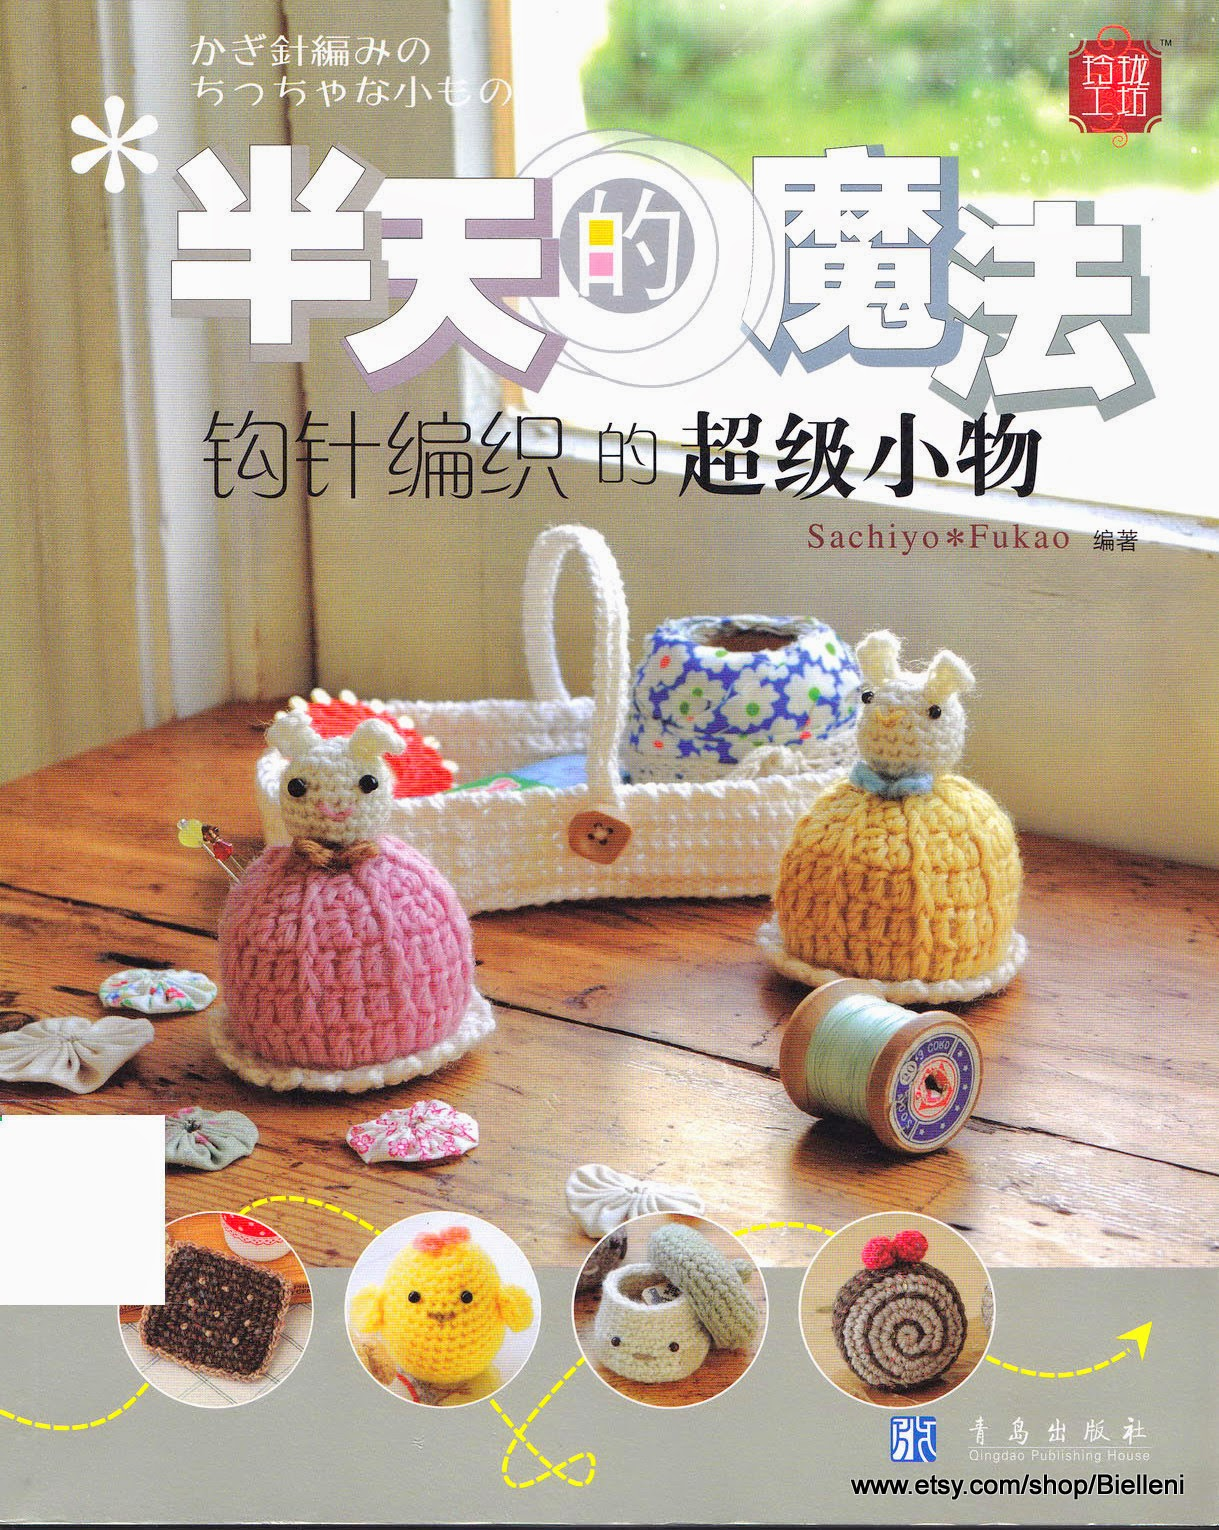 crochet,knits,amigurumi,accessories,home,shoes,pattern,japanese,pdf, kawaii,uncinetto,schemi,diagram,cheap,buku,ebooks,bags,womens,accessories, crochethandbags,dress,clothes,womens,accessories,shawl,stole,vest,bolero, jewelry,baby,kids,children,dolls,toys,plushie,accesories,kawaii,sweets,cake